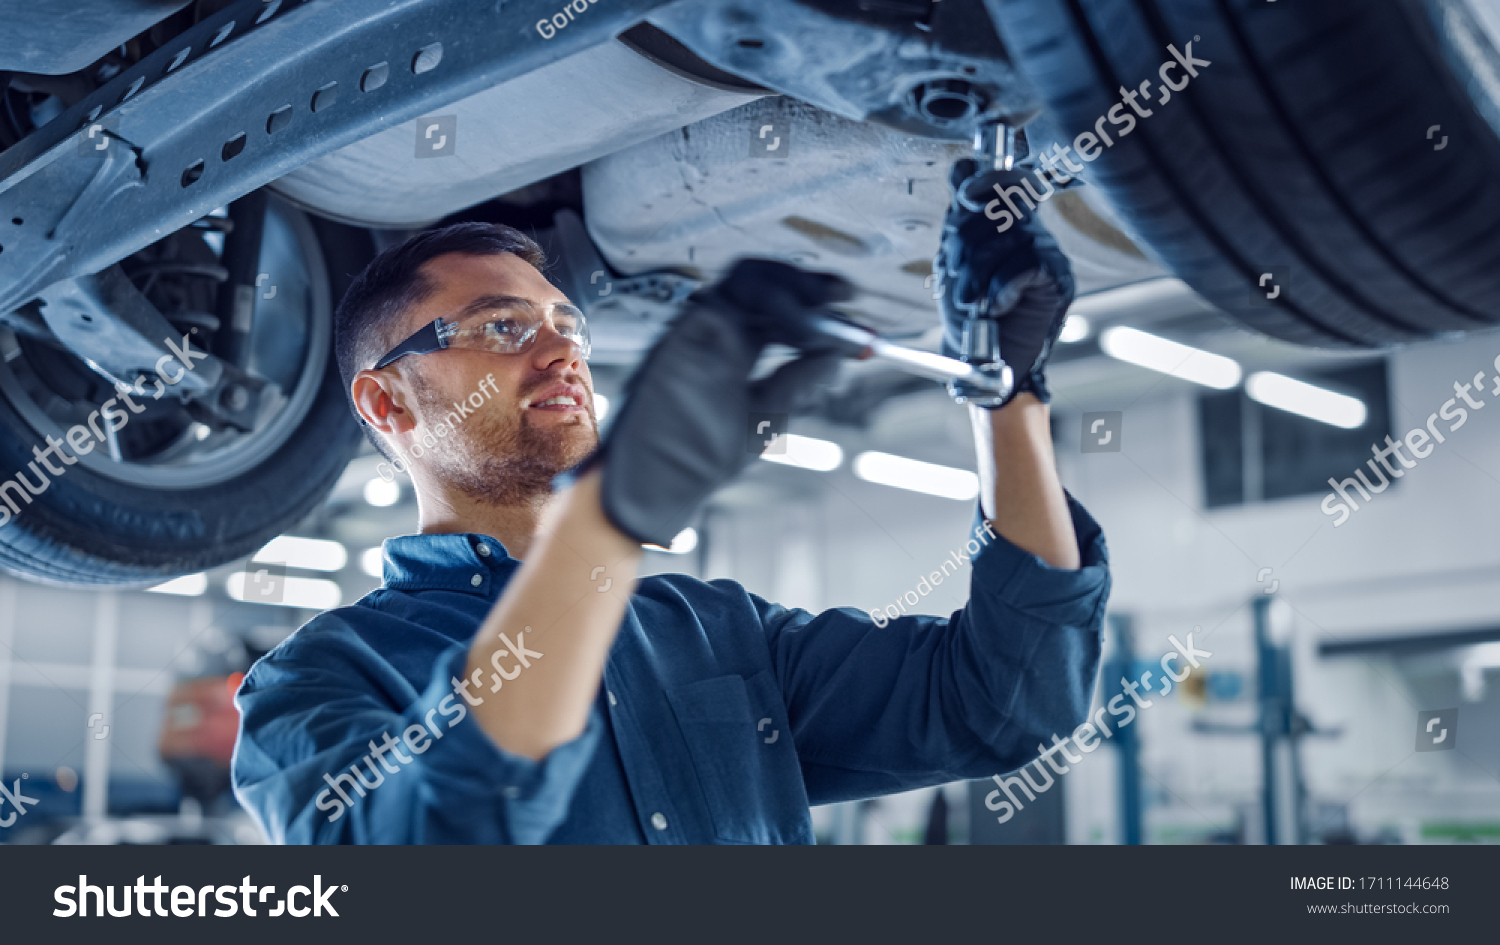 Portrait Shot of a Handsome Mechanic Working on a Vehicle in a Car Service. Professional Repairman is Wearing Gloves and Using a Ratchet Underneath the Car. Modern Clean Workshop. #1711144648